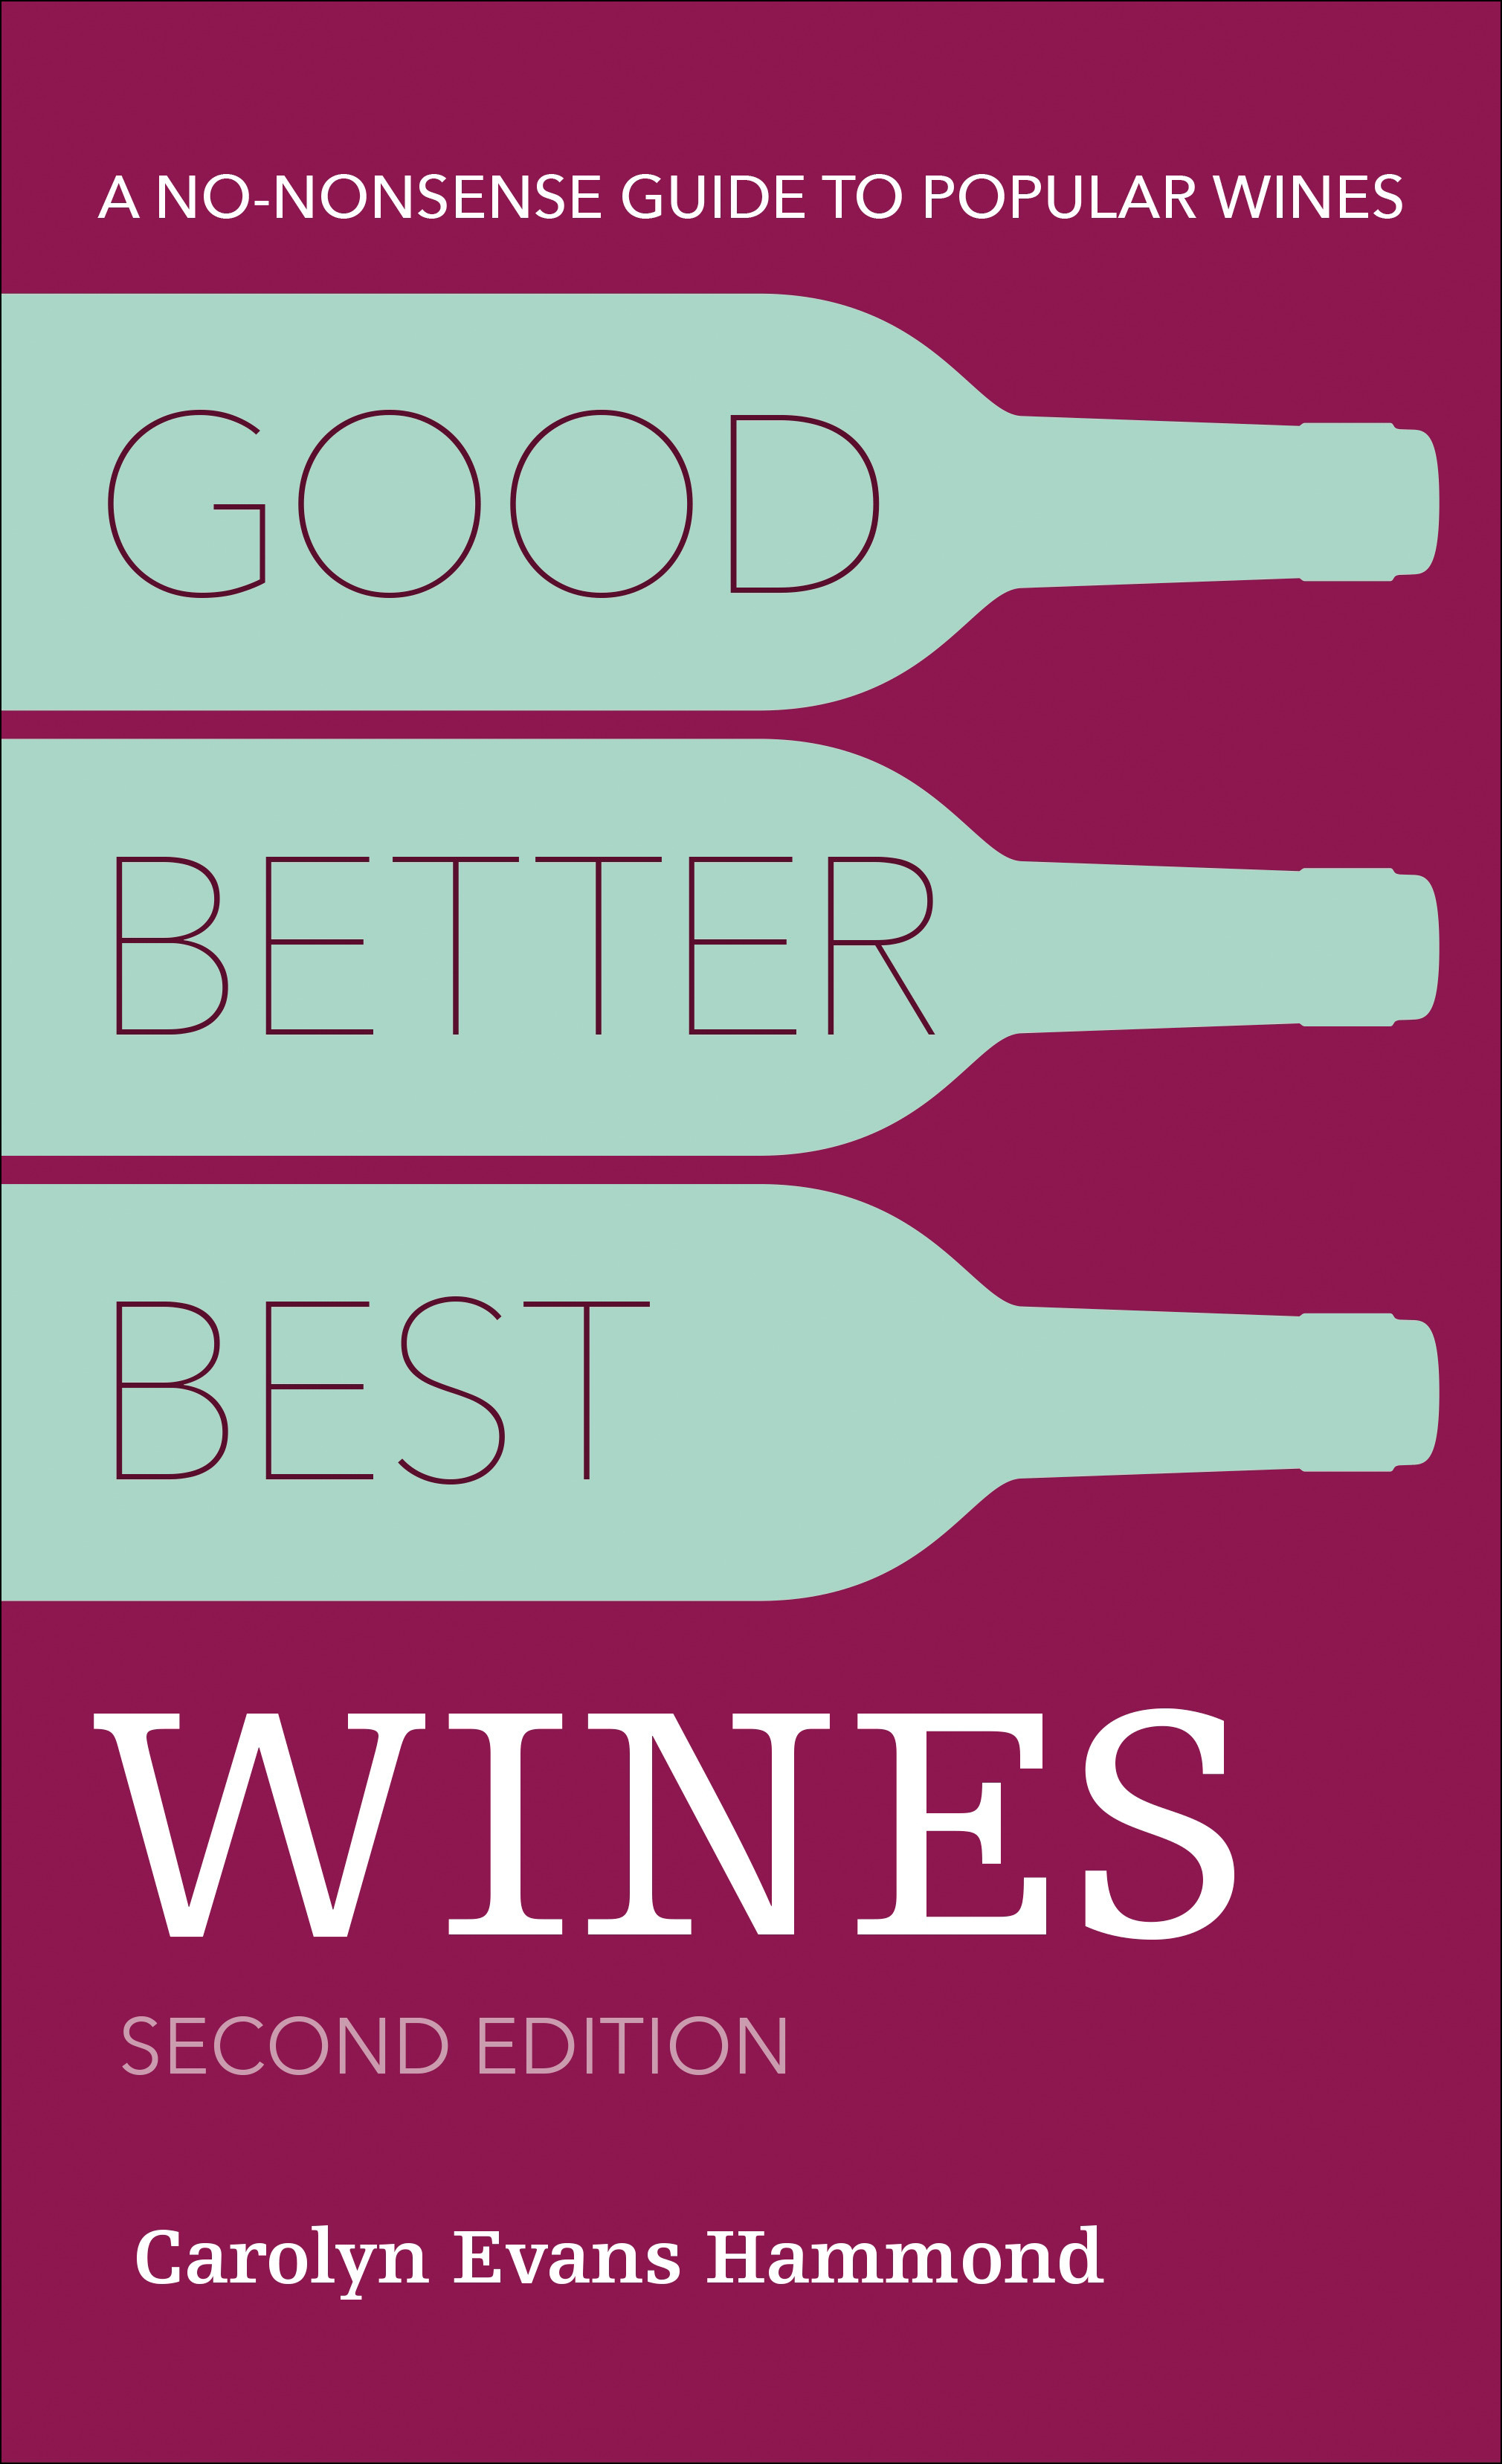 "Good Better Best Wines, 2nd Ed. - By CAROLYN EVANS HAMMONDABOUT GOOD, BETTER, BEST WINES, 2ND EDITION""They're big, they're out there, but they're not all the same. This book cuts a sure course through the ocean of popular wines. Carolyn's enthusiasm and stylistic panache tells you what you need to know—and fast."" — Andrew Jefford, columnist for Decanter and chairman of the 2018 Decanter World Wine AwardsClick here to buy it.ORDER SIGNED COPIES BY EMAILING CAROLYN@CAROLYNEVANSHAMMOND.COMNovember 13, 2018, $12.99PaperbackPublished by Alpha256 Pages 